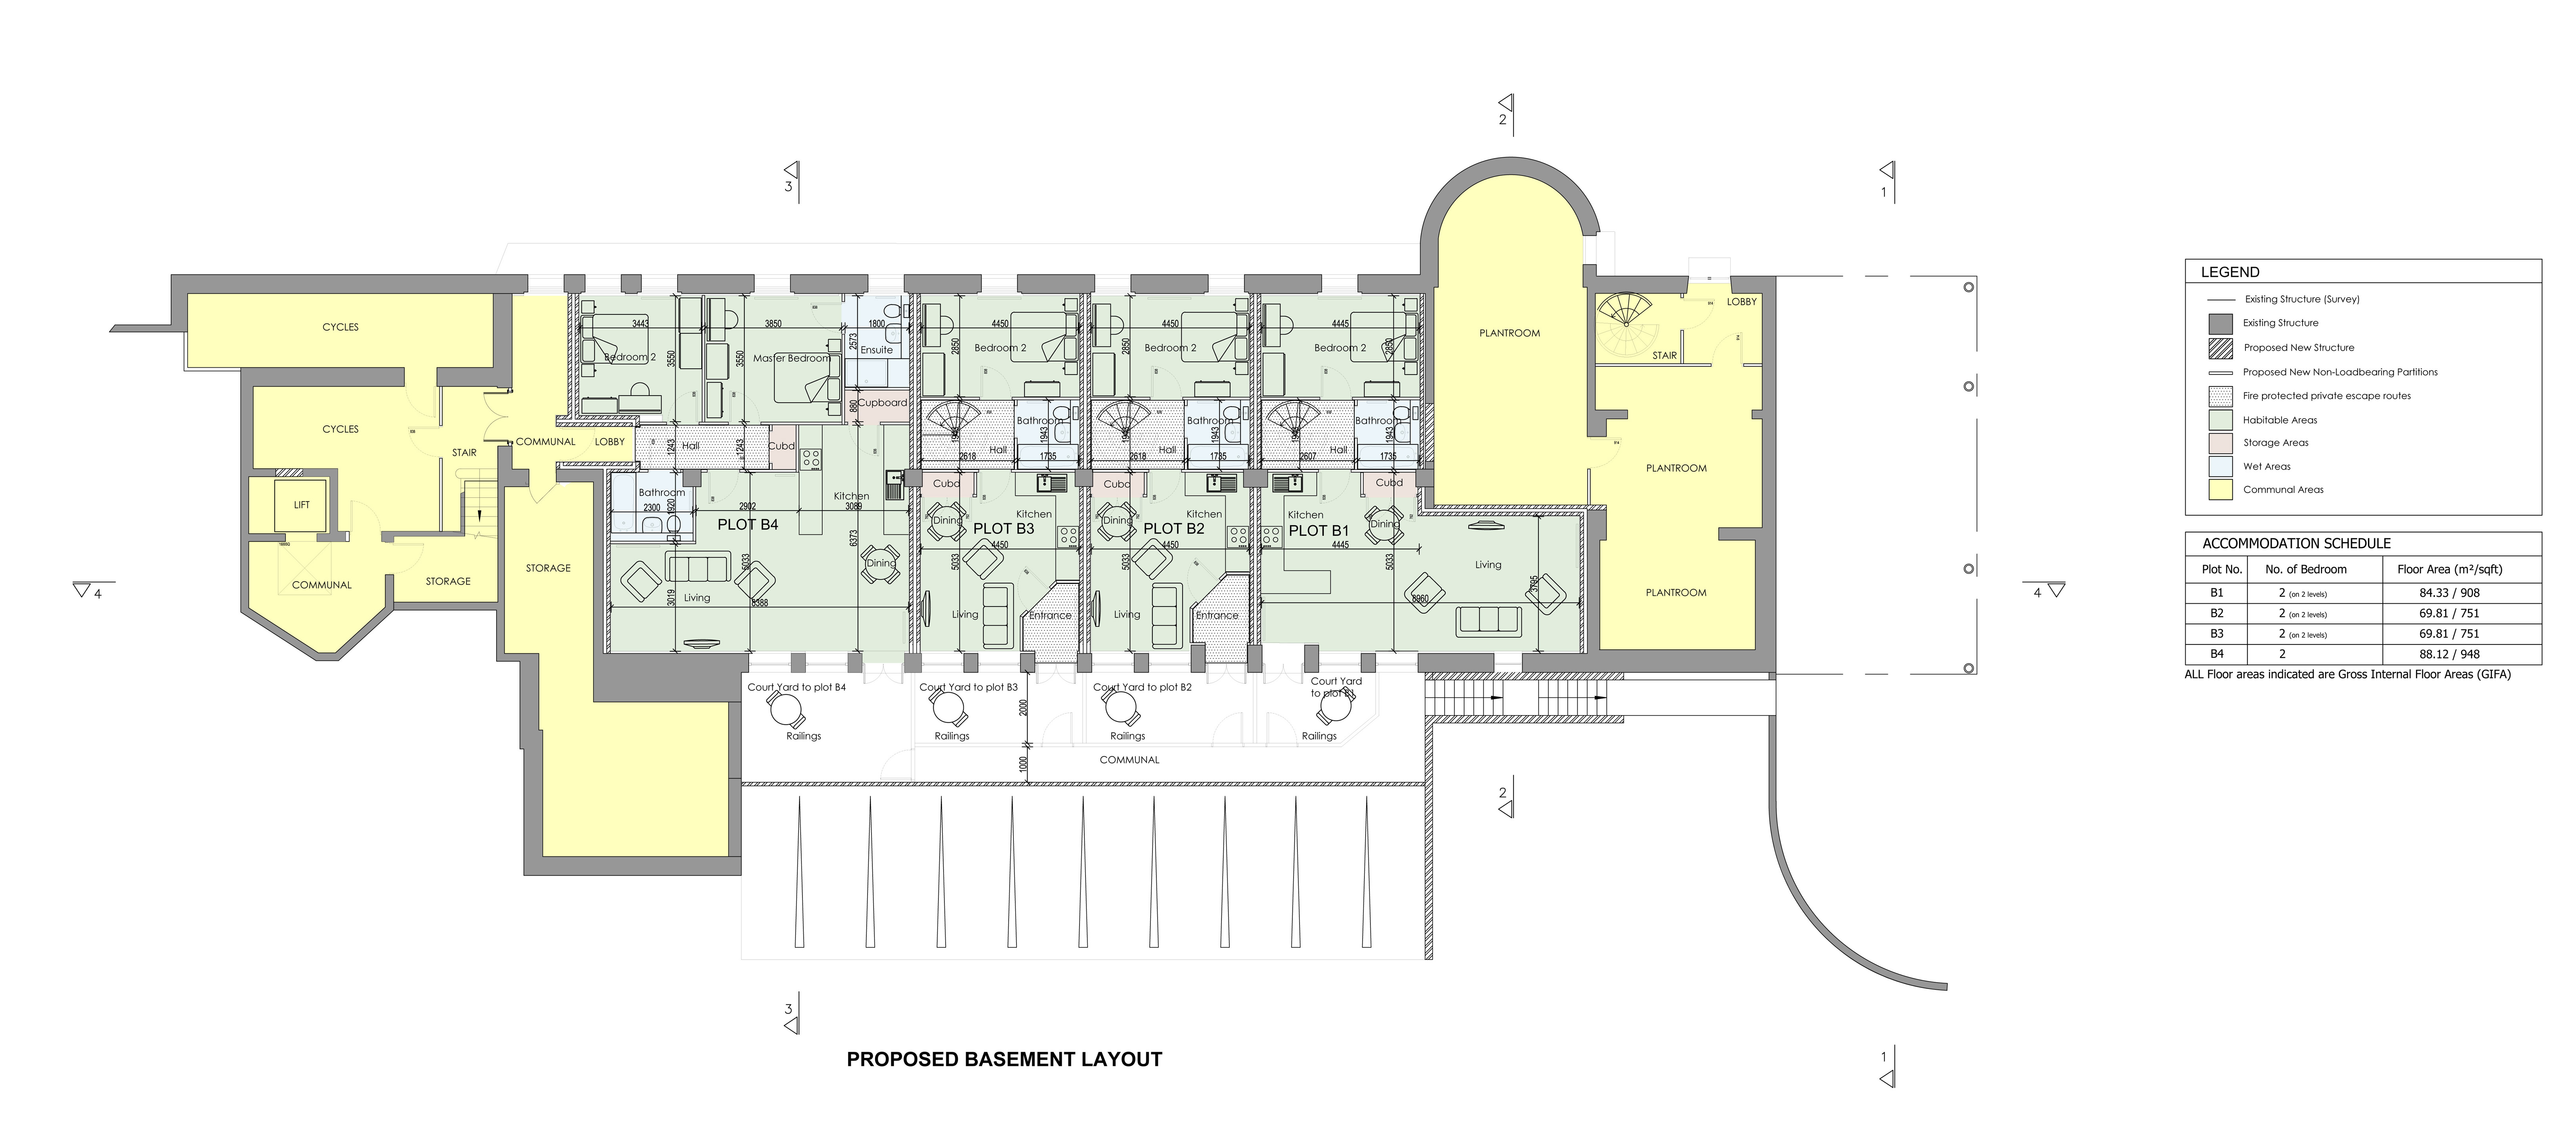 Proposed Basement Layout 11jpg